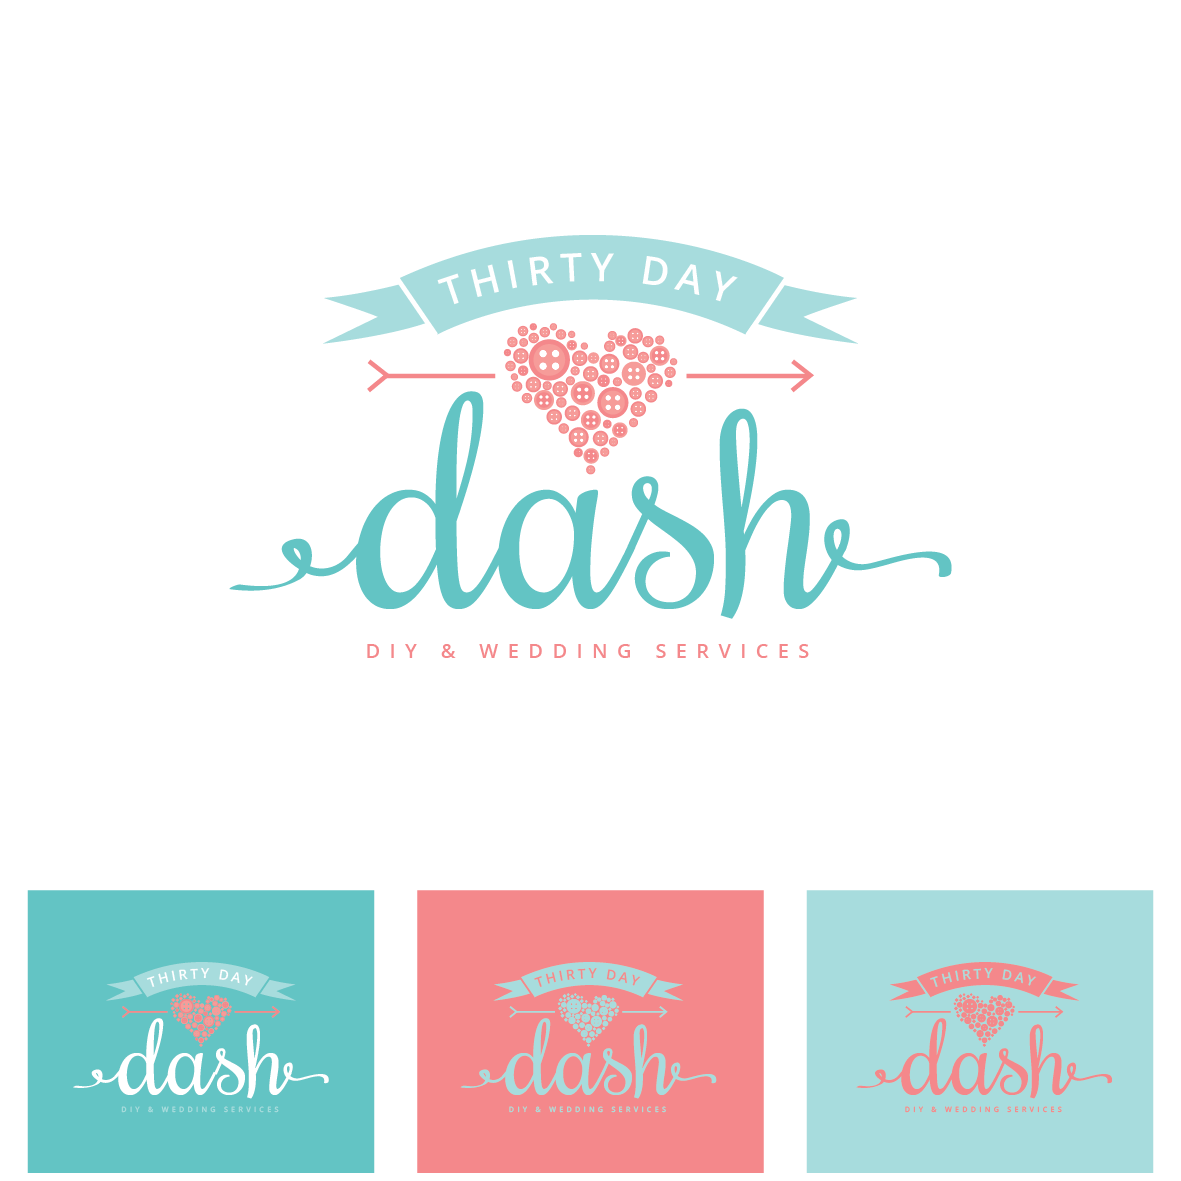 Create a creative, craft and/or wedding inspired logo for Thirty Day Dash